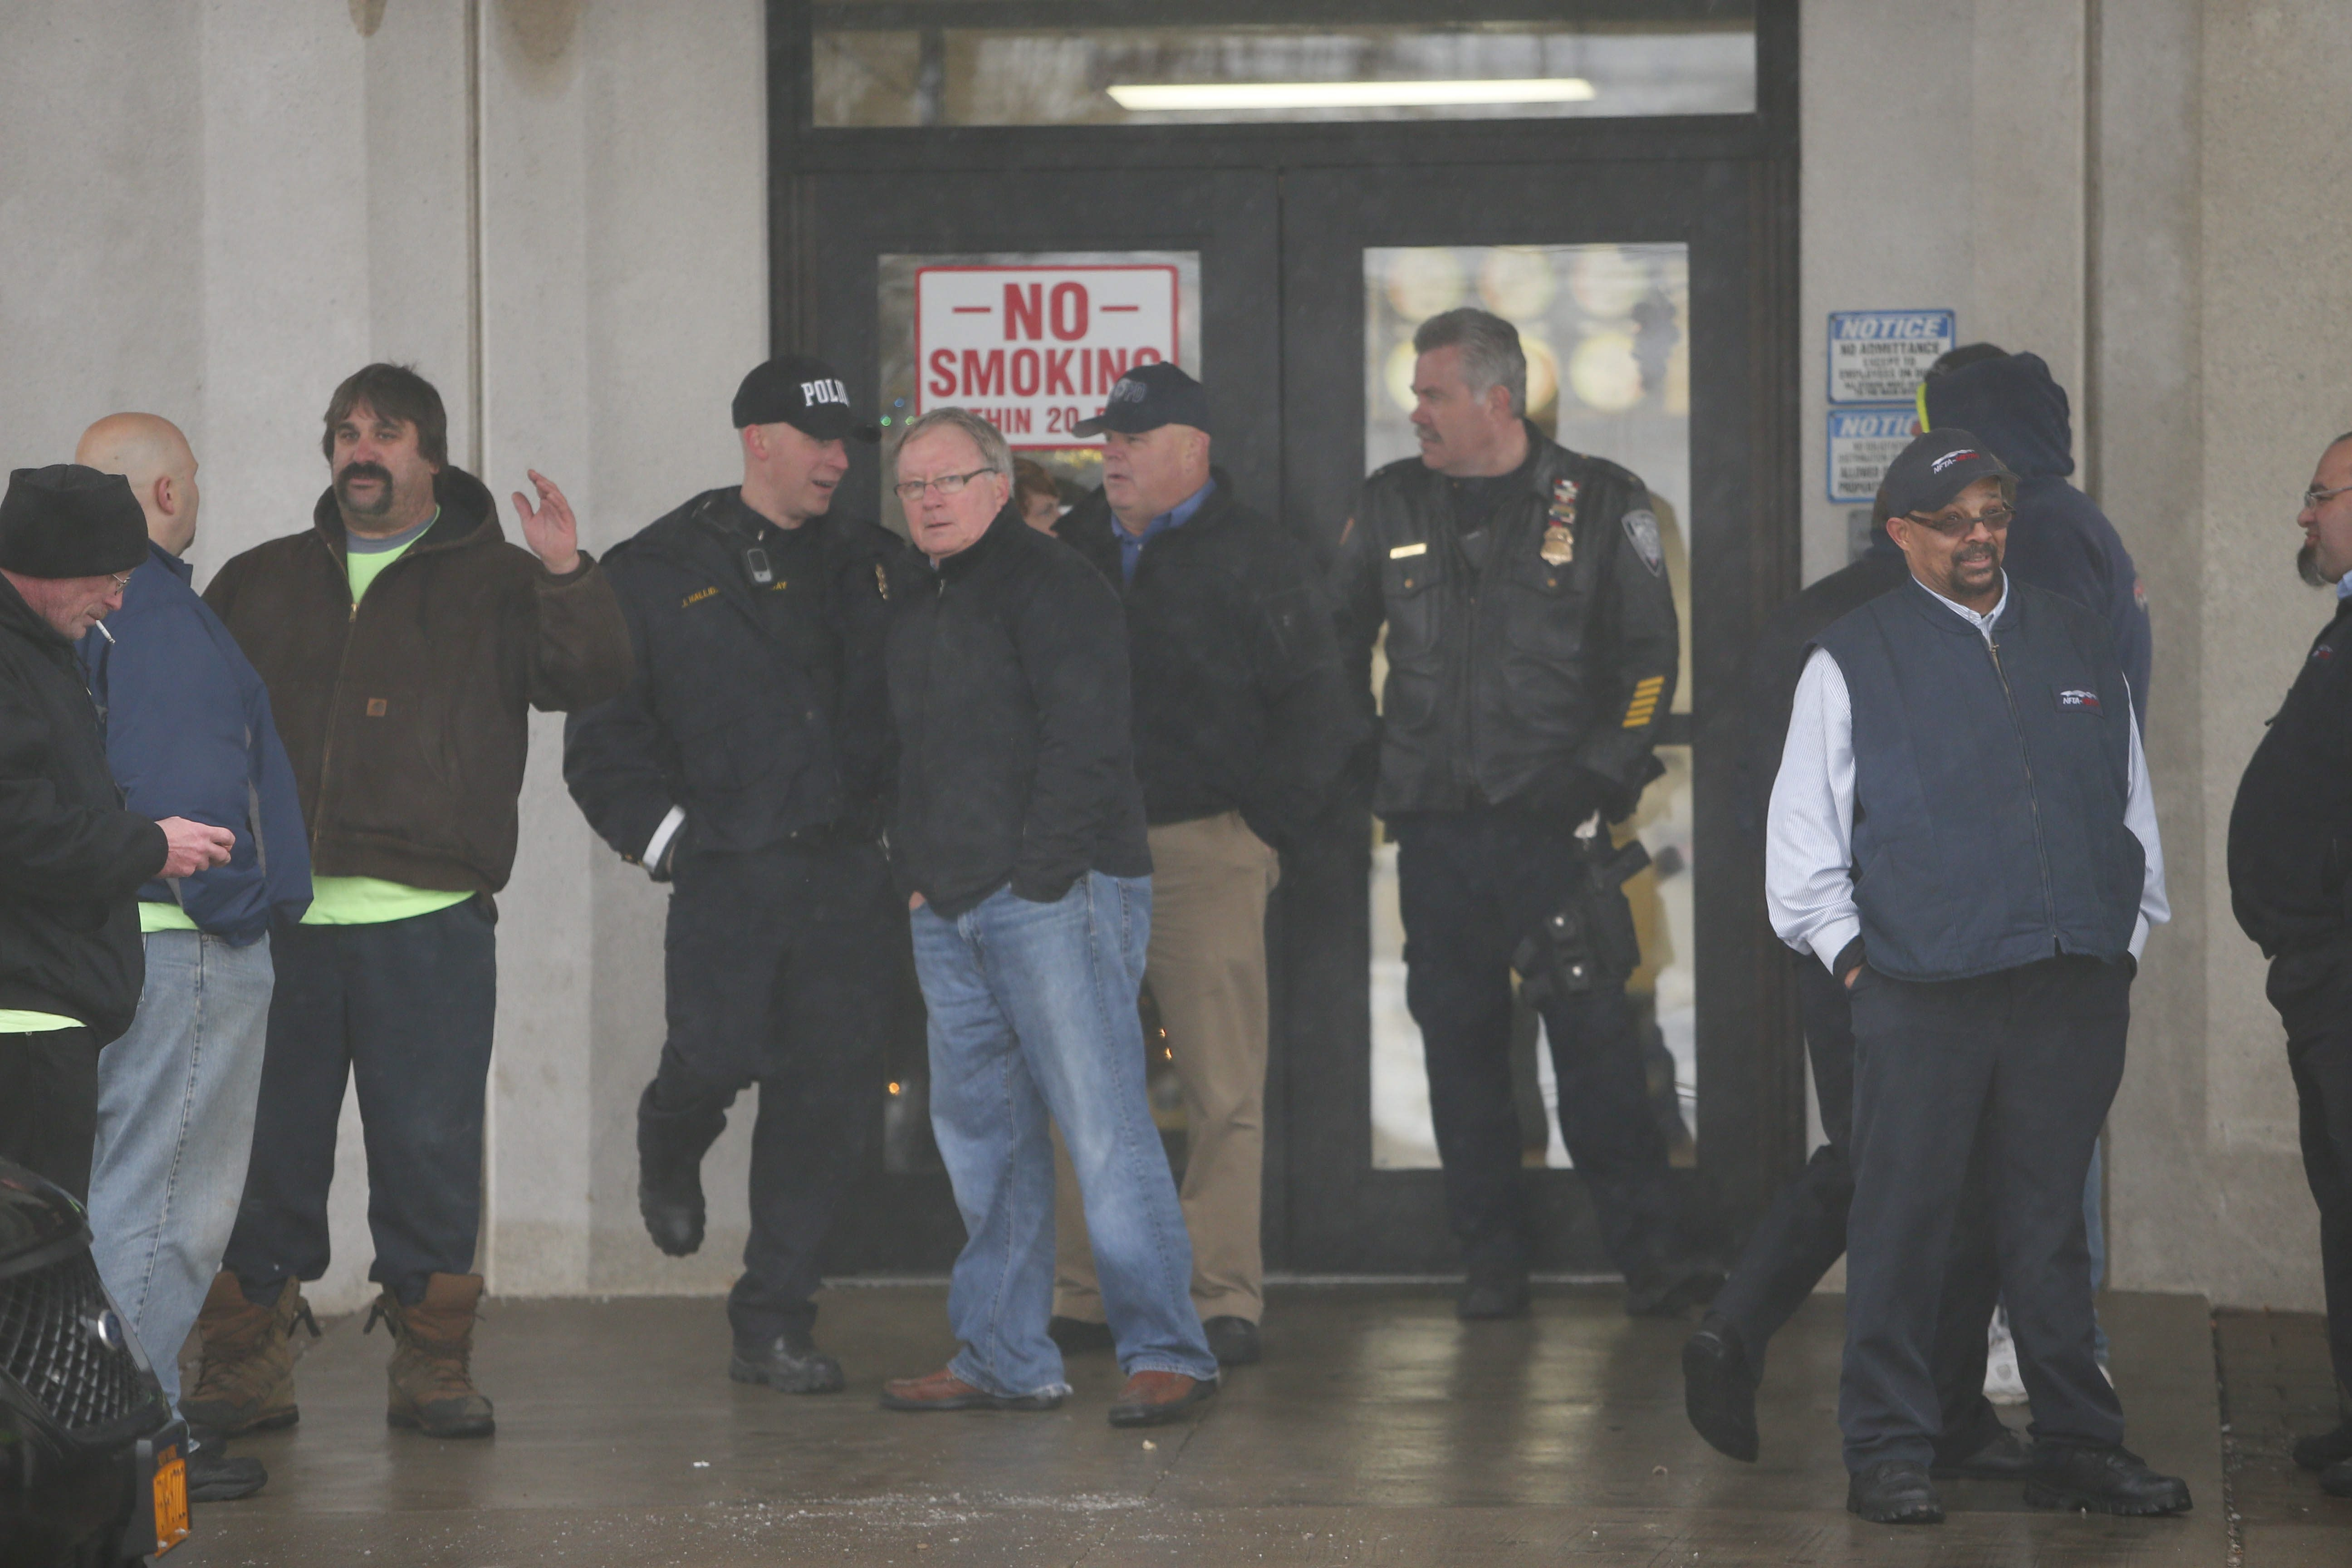 NFTA board member and Amalgamated Transit Union President Vincent G. Crehan, second from left, was prevented by NFTA police from entering the NFTA facility where the agency's holiday party was taking place Friday.